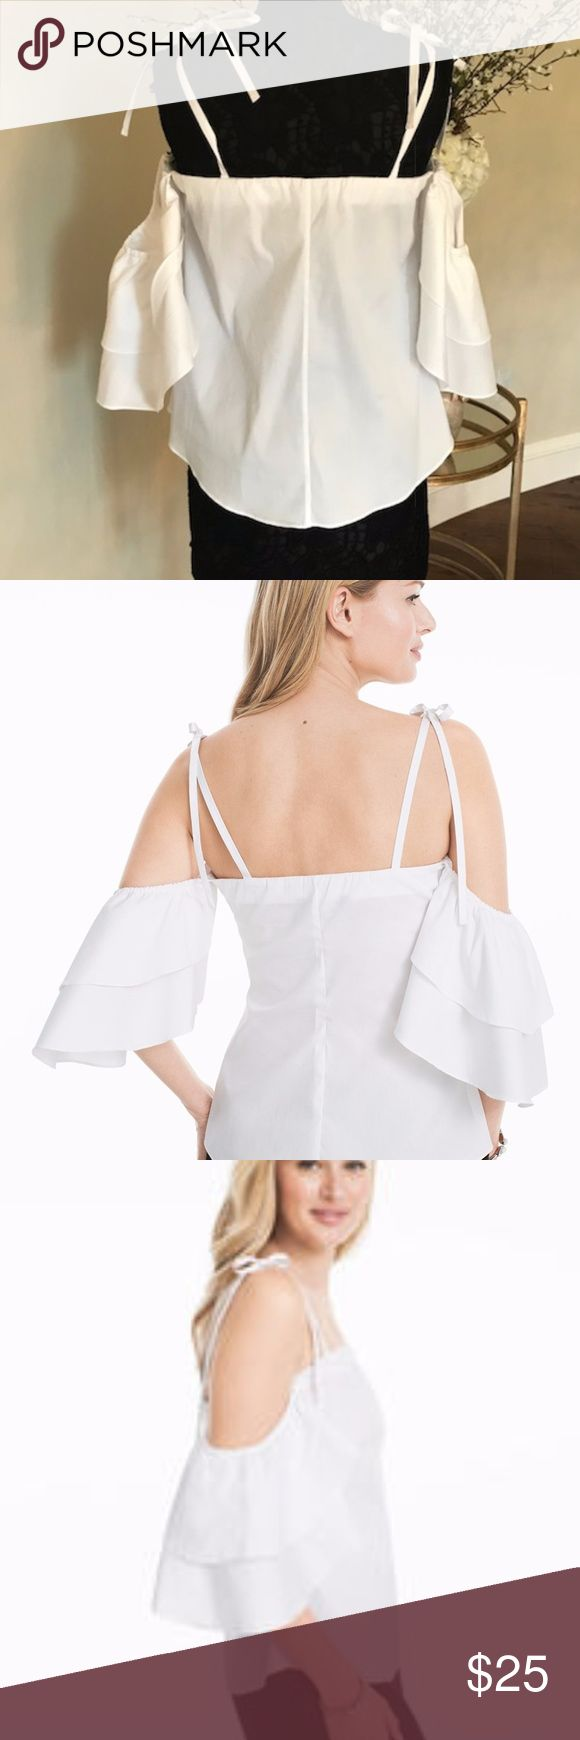 "NWT WHBM RUFFLED COLD-SHOULDER WHITE BLOUSE Brand New!  Cold-shoulder white blouse Ruffled short sleeves with ties at each shoulder Approx. 25"" from shoulder Cotton/nylon/spandex. Machine wash cold.  For the frill of it, we gave our latest shoulder-baring blouse dramatic ruffled sleeves and a white haute hue. The ties at the shoulders add extra feminine flair without the fuss...meaning you can adjust to your liking. White House Black Market Tops Blouses"